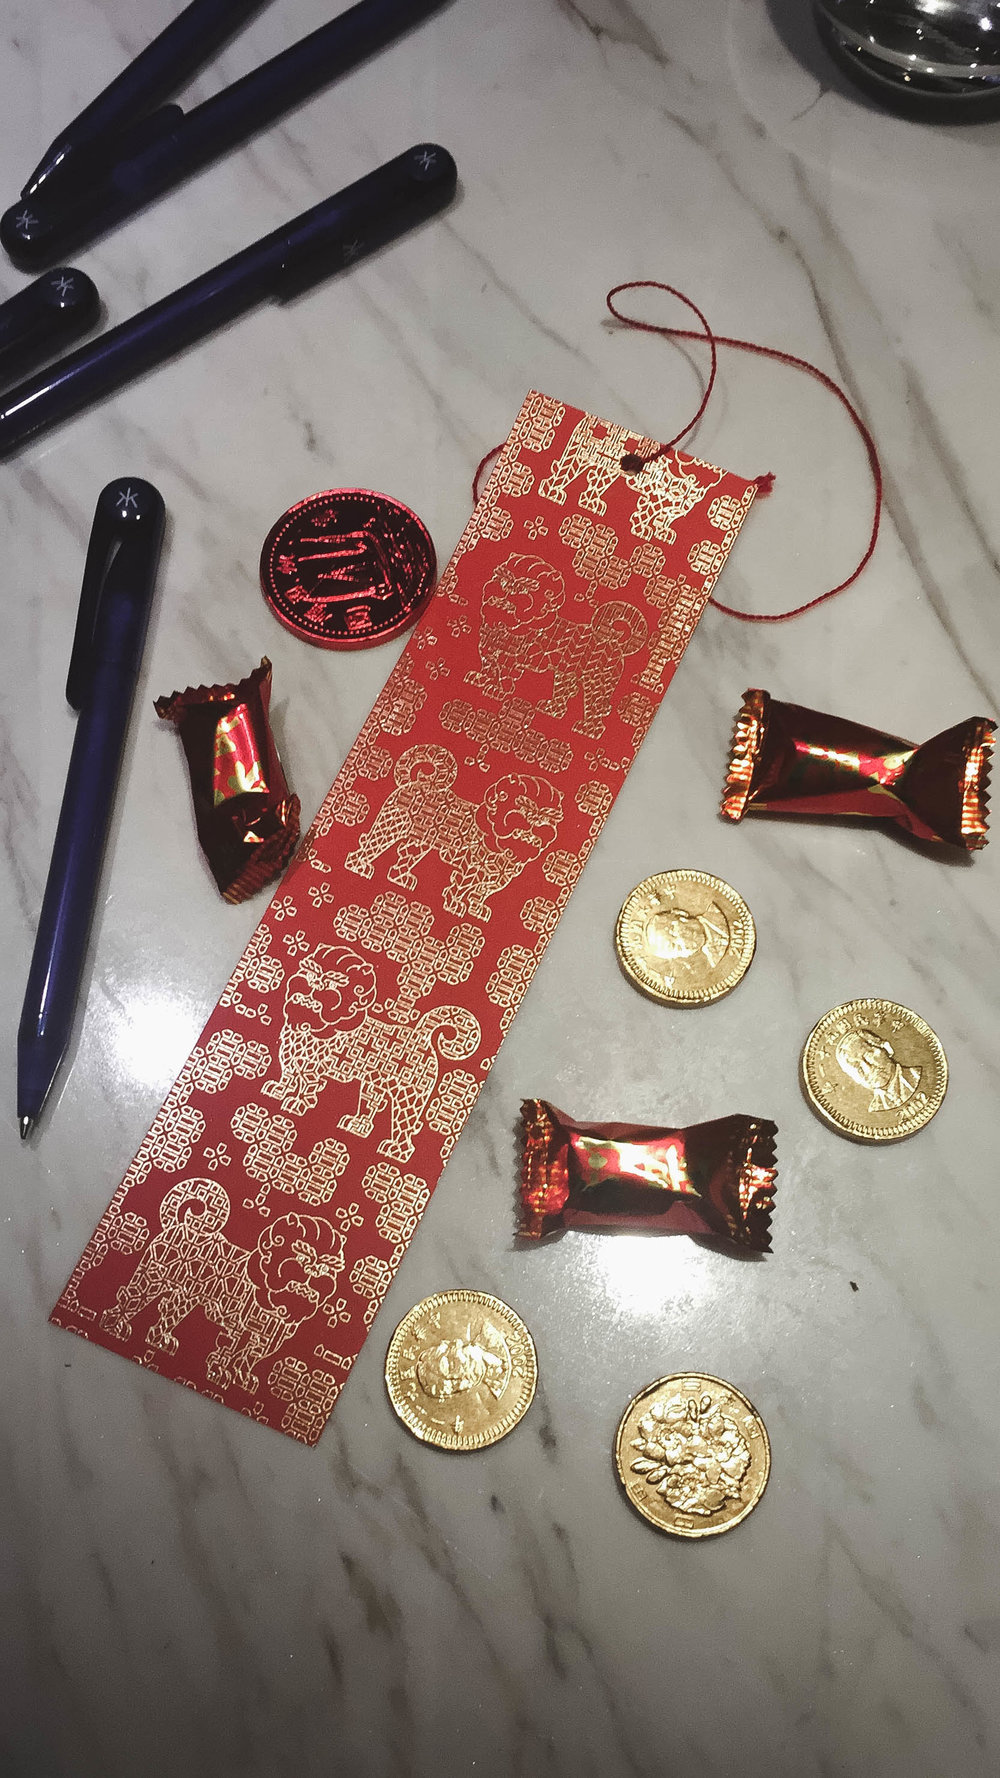 We wrote out our wishes for 2018 for the restaurant to hang up. Our leaders Melanie and Stephanie hooked it up with chocolate gold coins and candy. YUM!